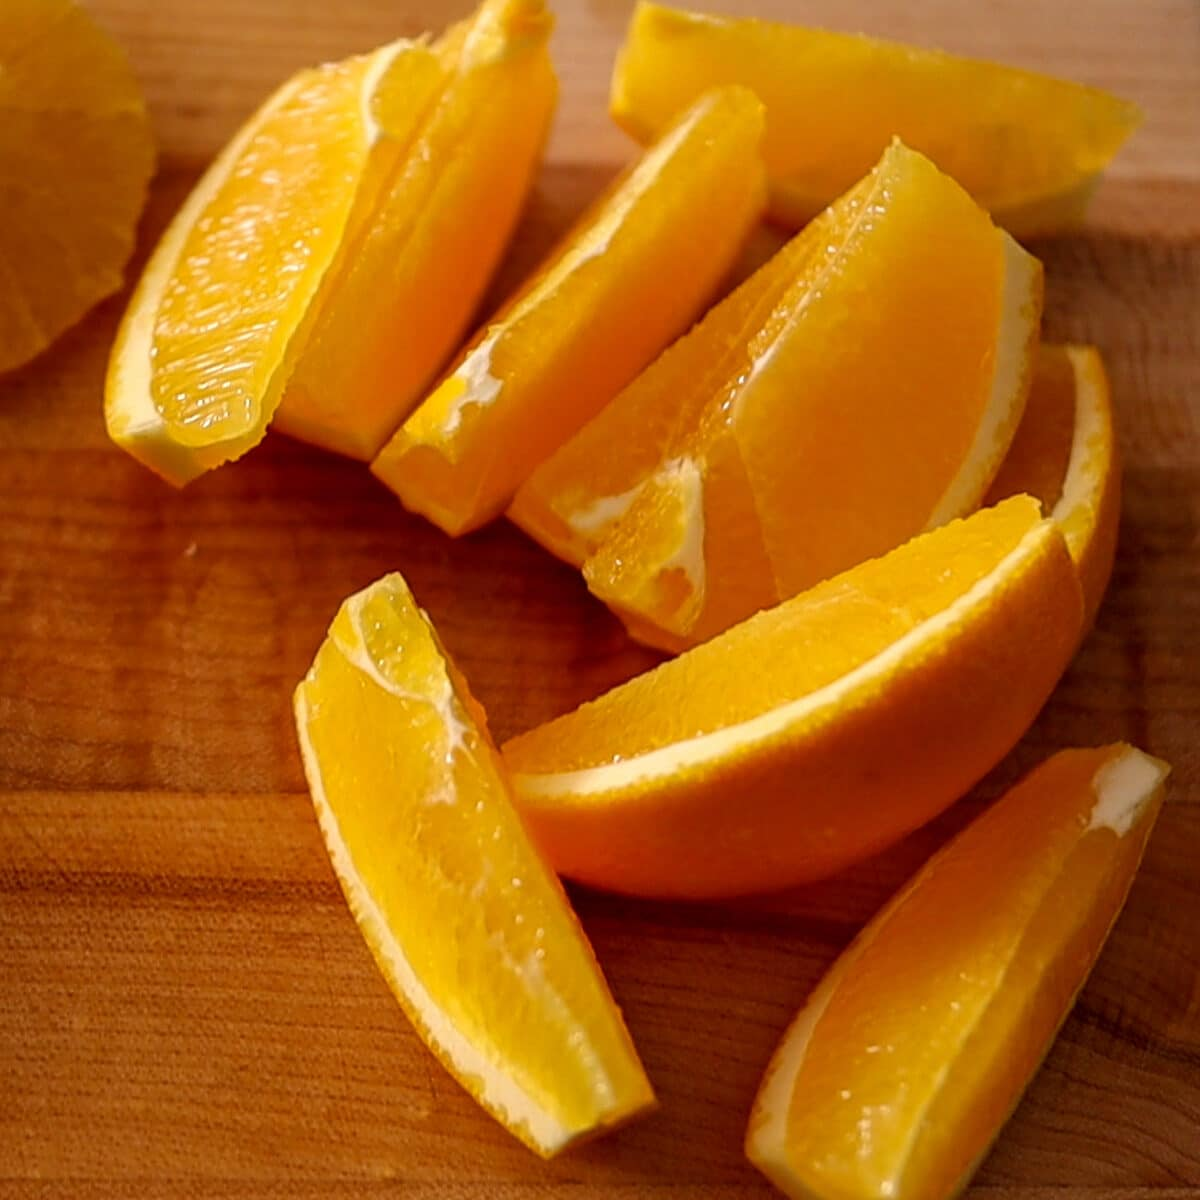 cut up oranges